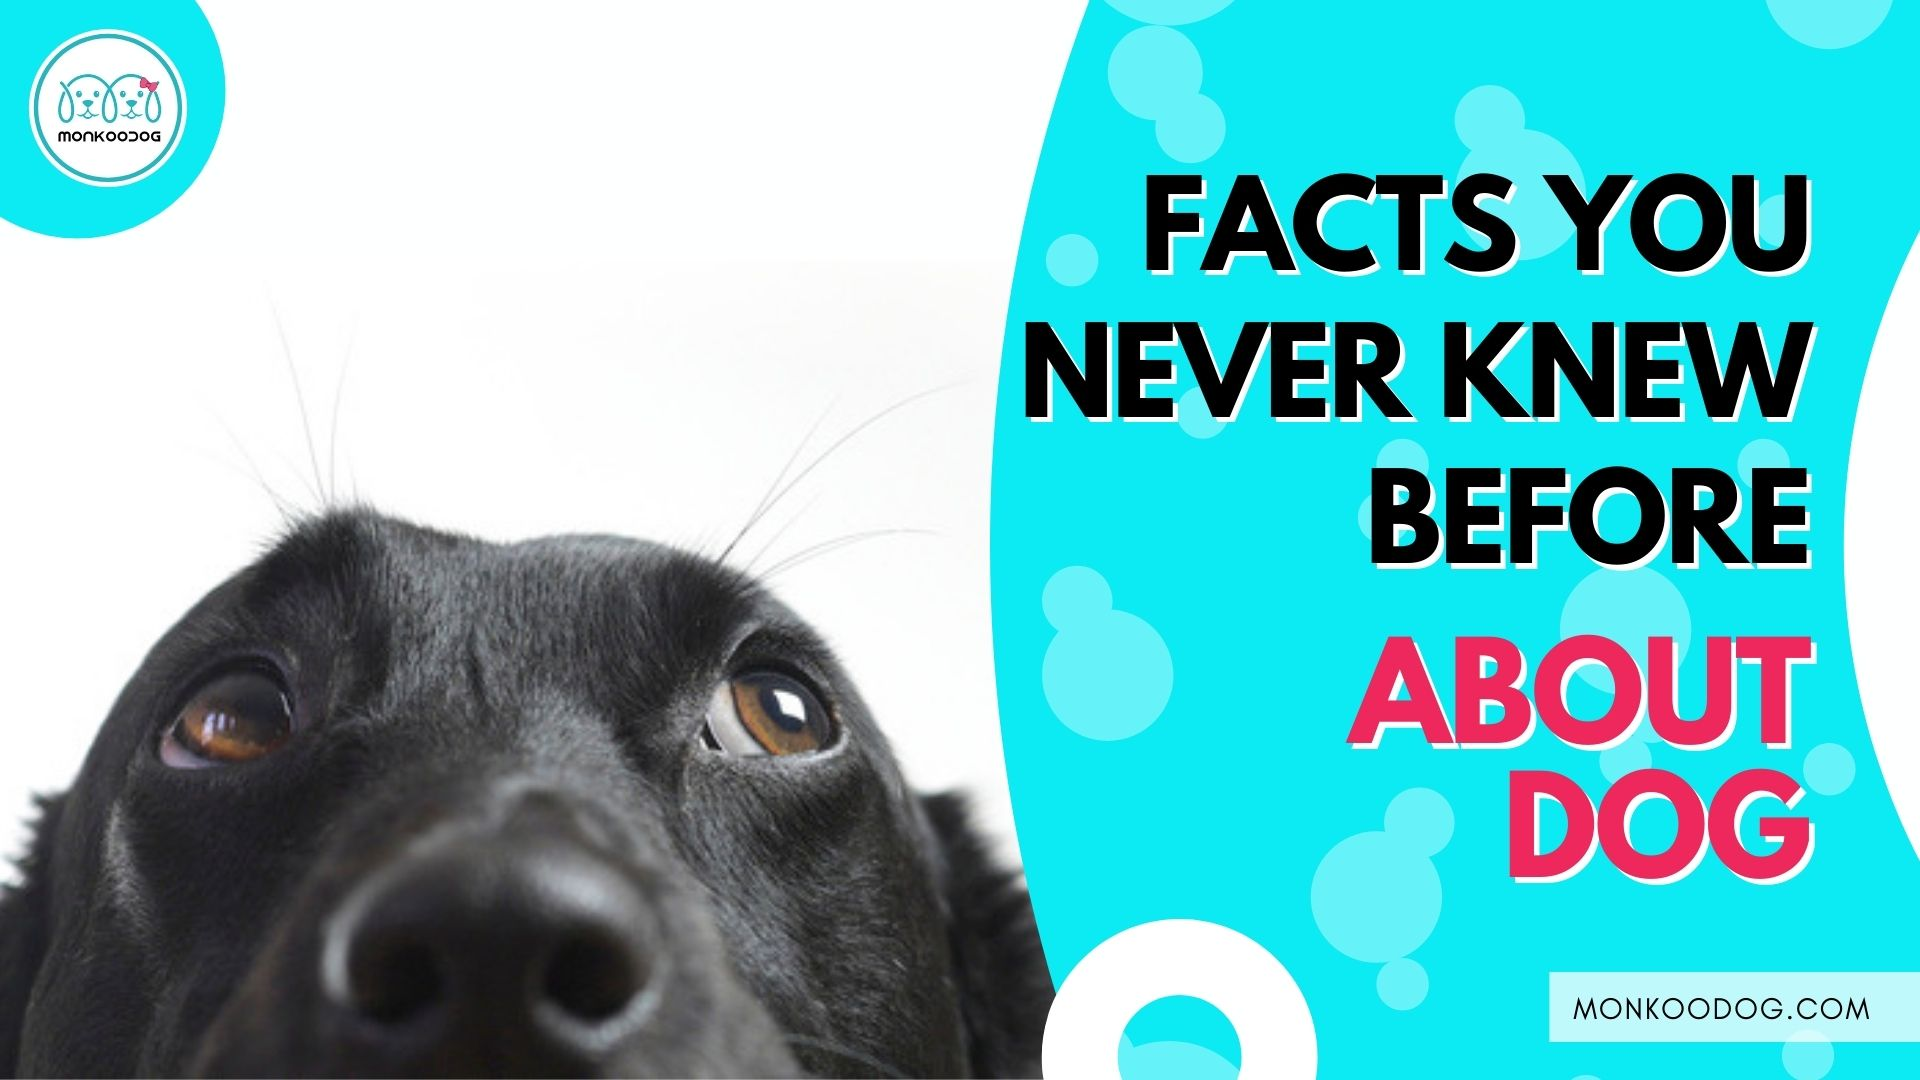 Amazing fun facts about dogs you never knew before